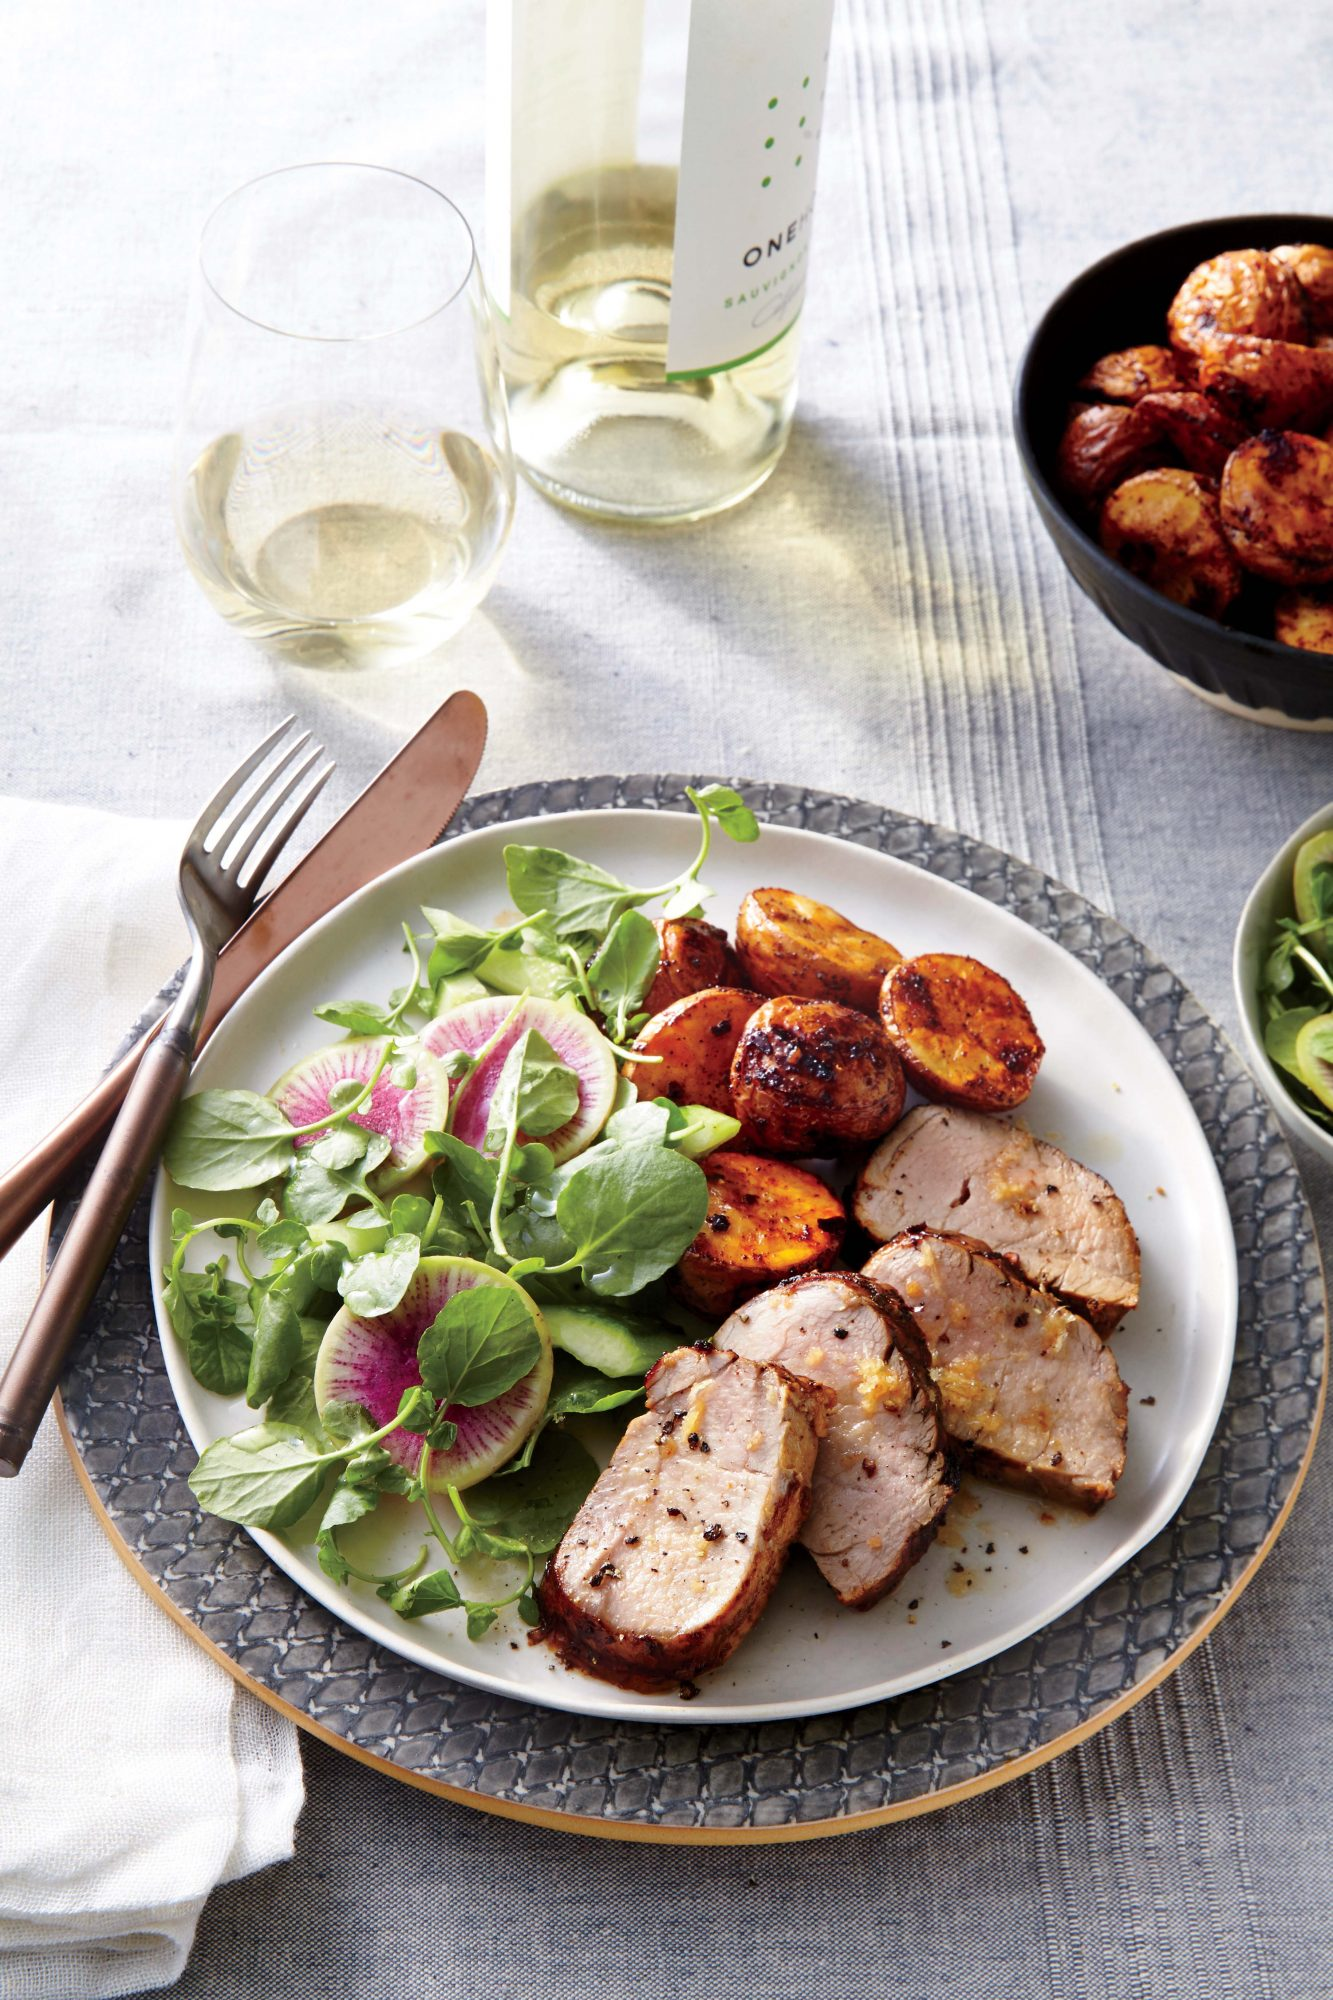 Ginger-Honey Glazed Pork Tenderloin